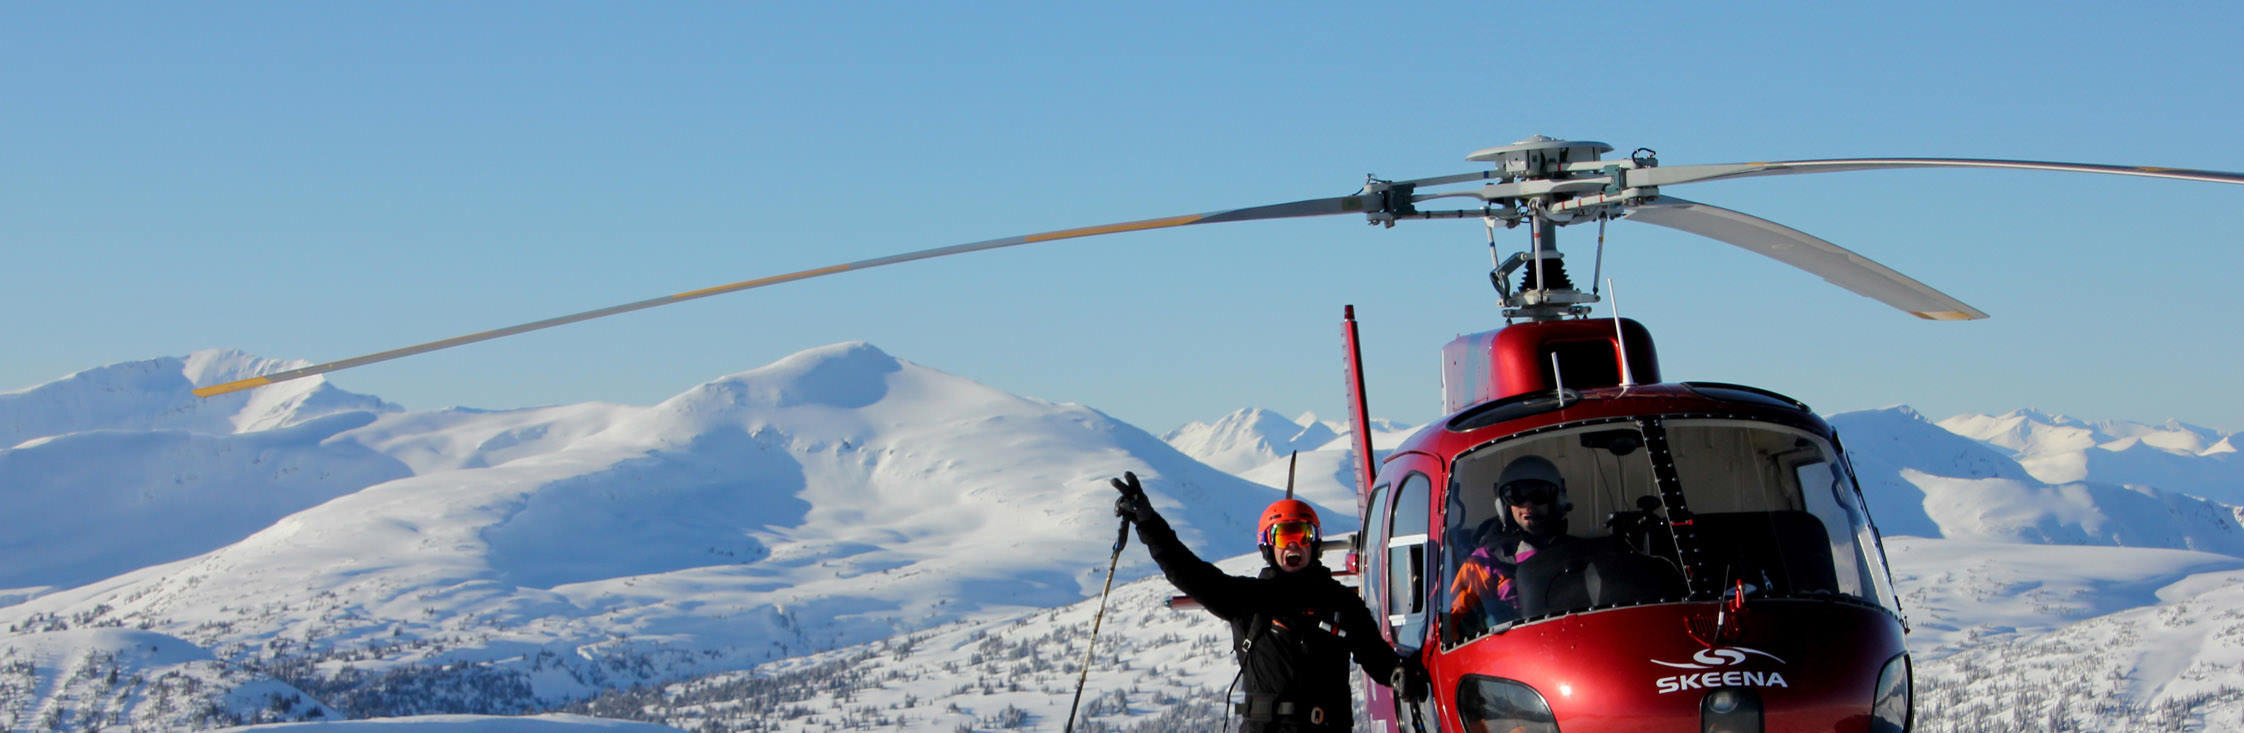 heliskiing_small_skeena-helicopter-skier-happy